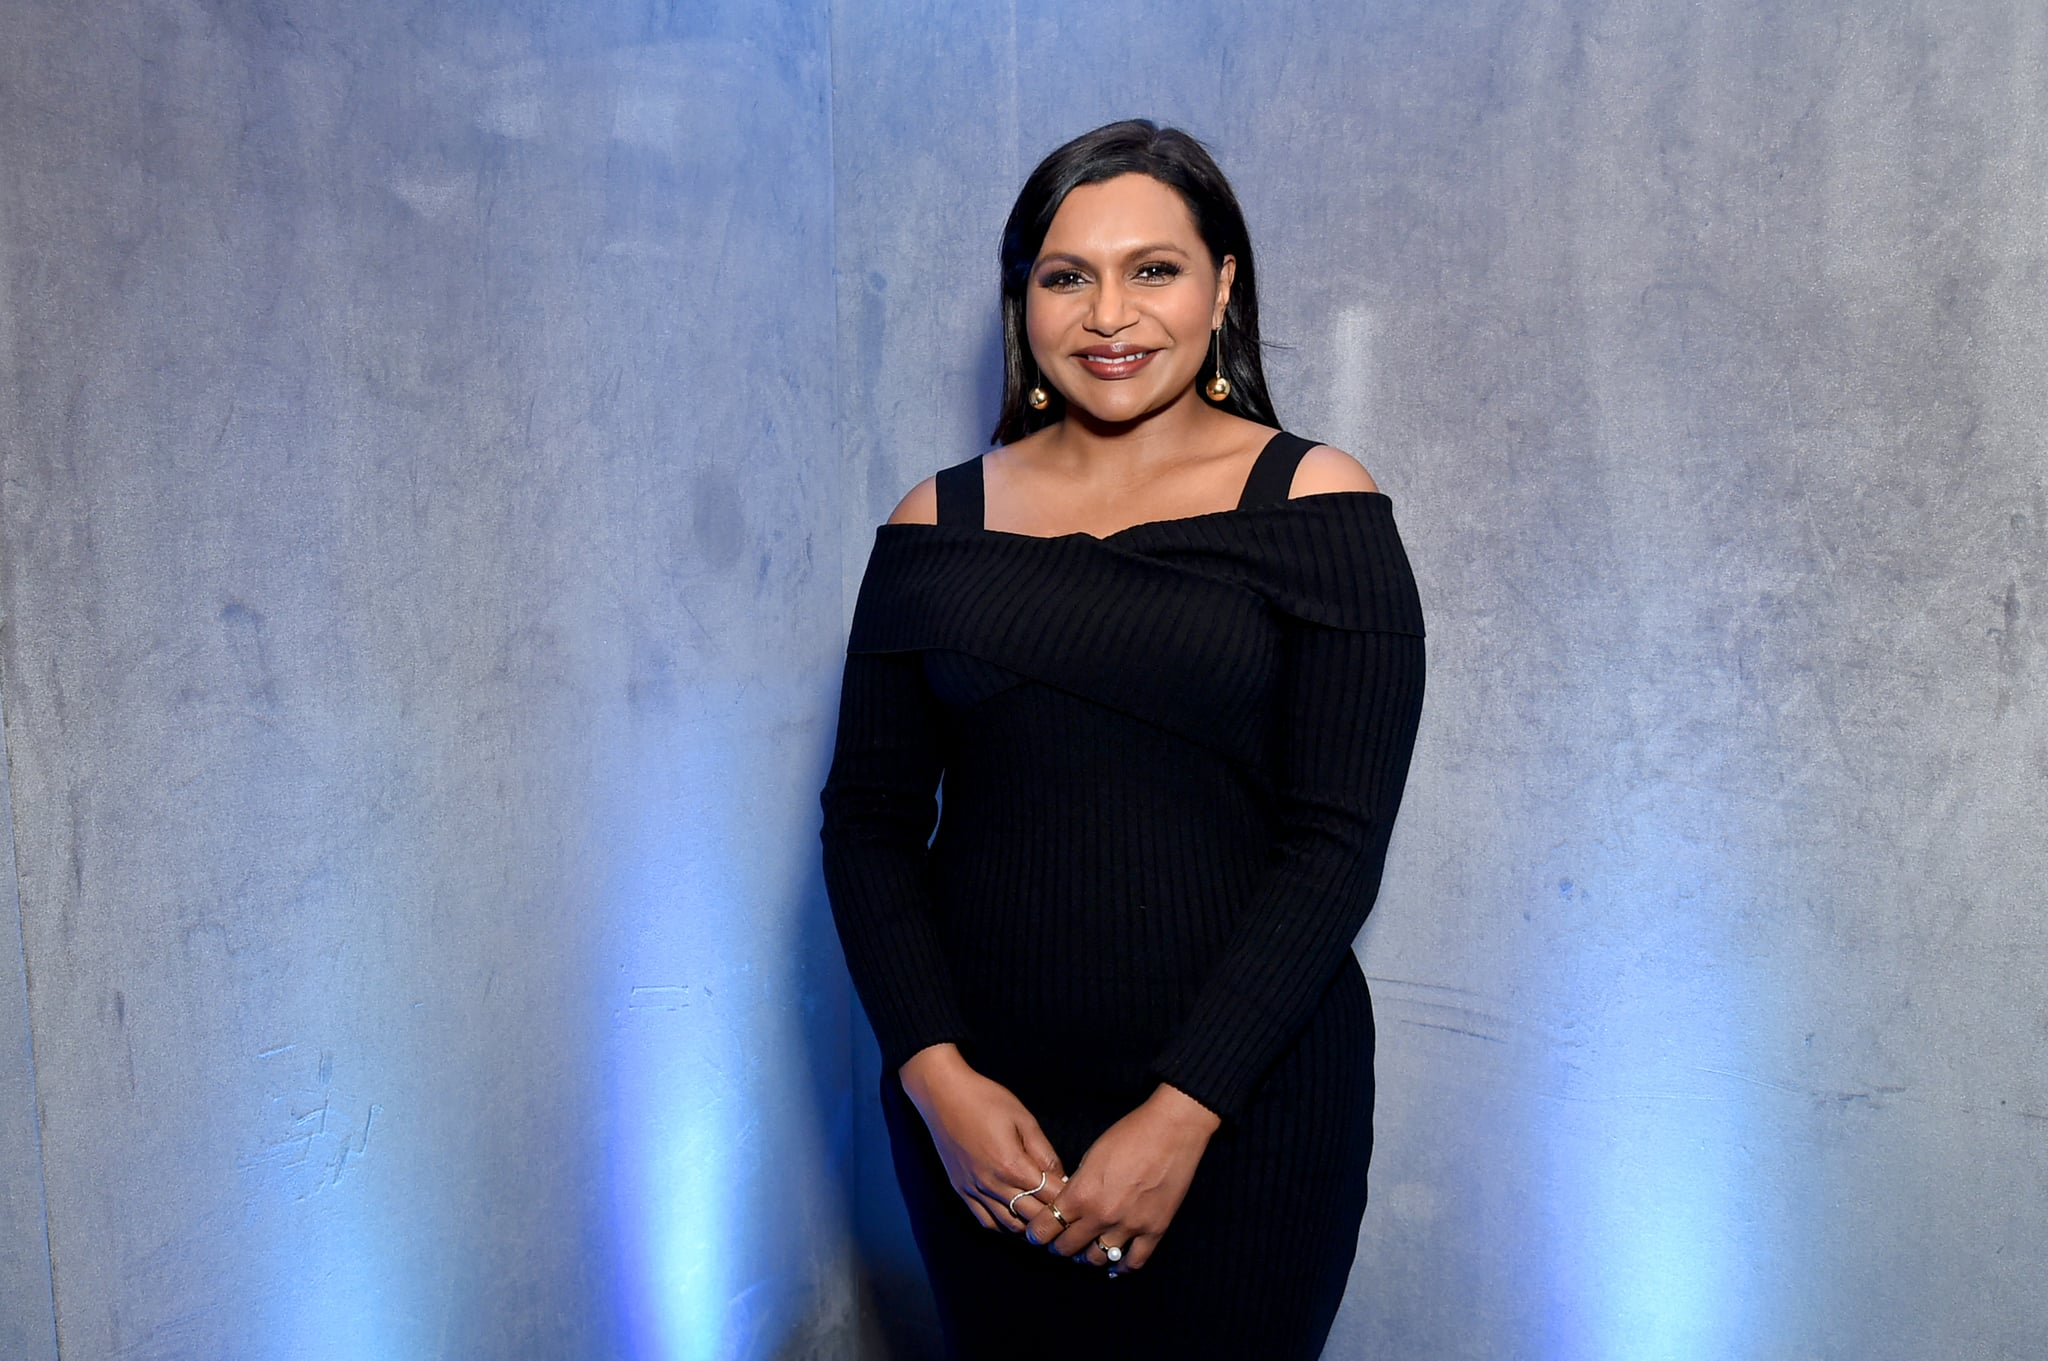 NEW YORK, NY - MAY 02:  Mindy Kaling poses for a photo in the Hulu Upfront 2018 Green Room at The Hulu Theater at Madison Square Garden on May 2, 2018 in New York City.  (Photo by Mike Coppola/Getty Images for Hulu)